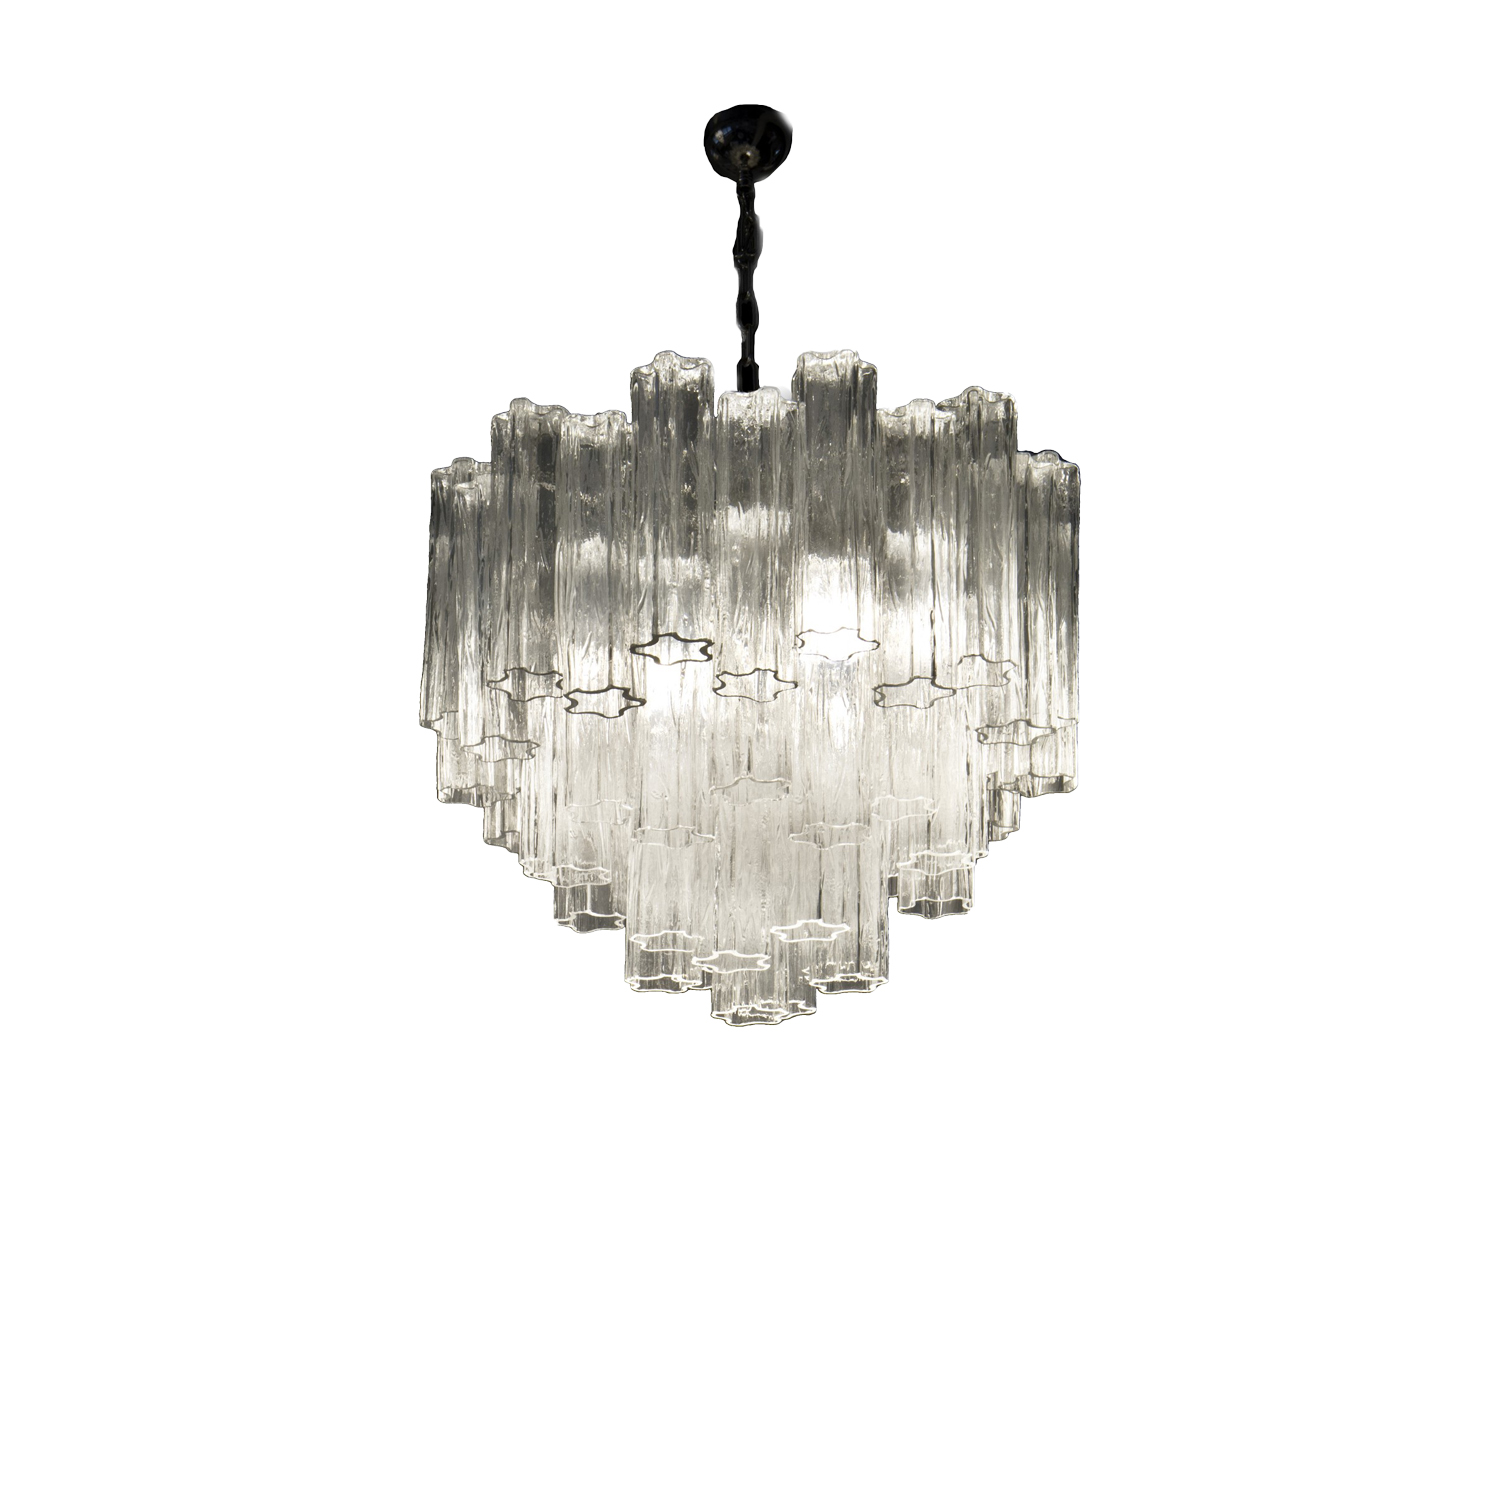 Wood Chandelier - <p>This chandelier, made with original Murano techniques, has 7 lights bulb that create elegant and refined reflection. It is possible to personalise the chandelier in different forms, number of lights and glass elements.</p>  | Matter of Stuff